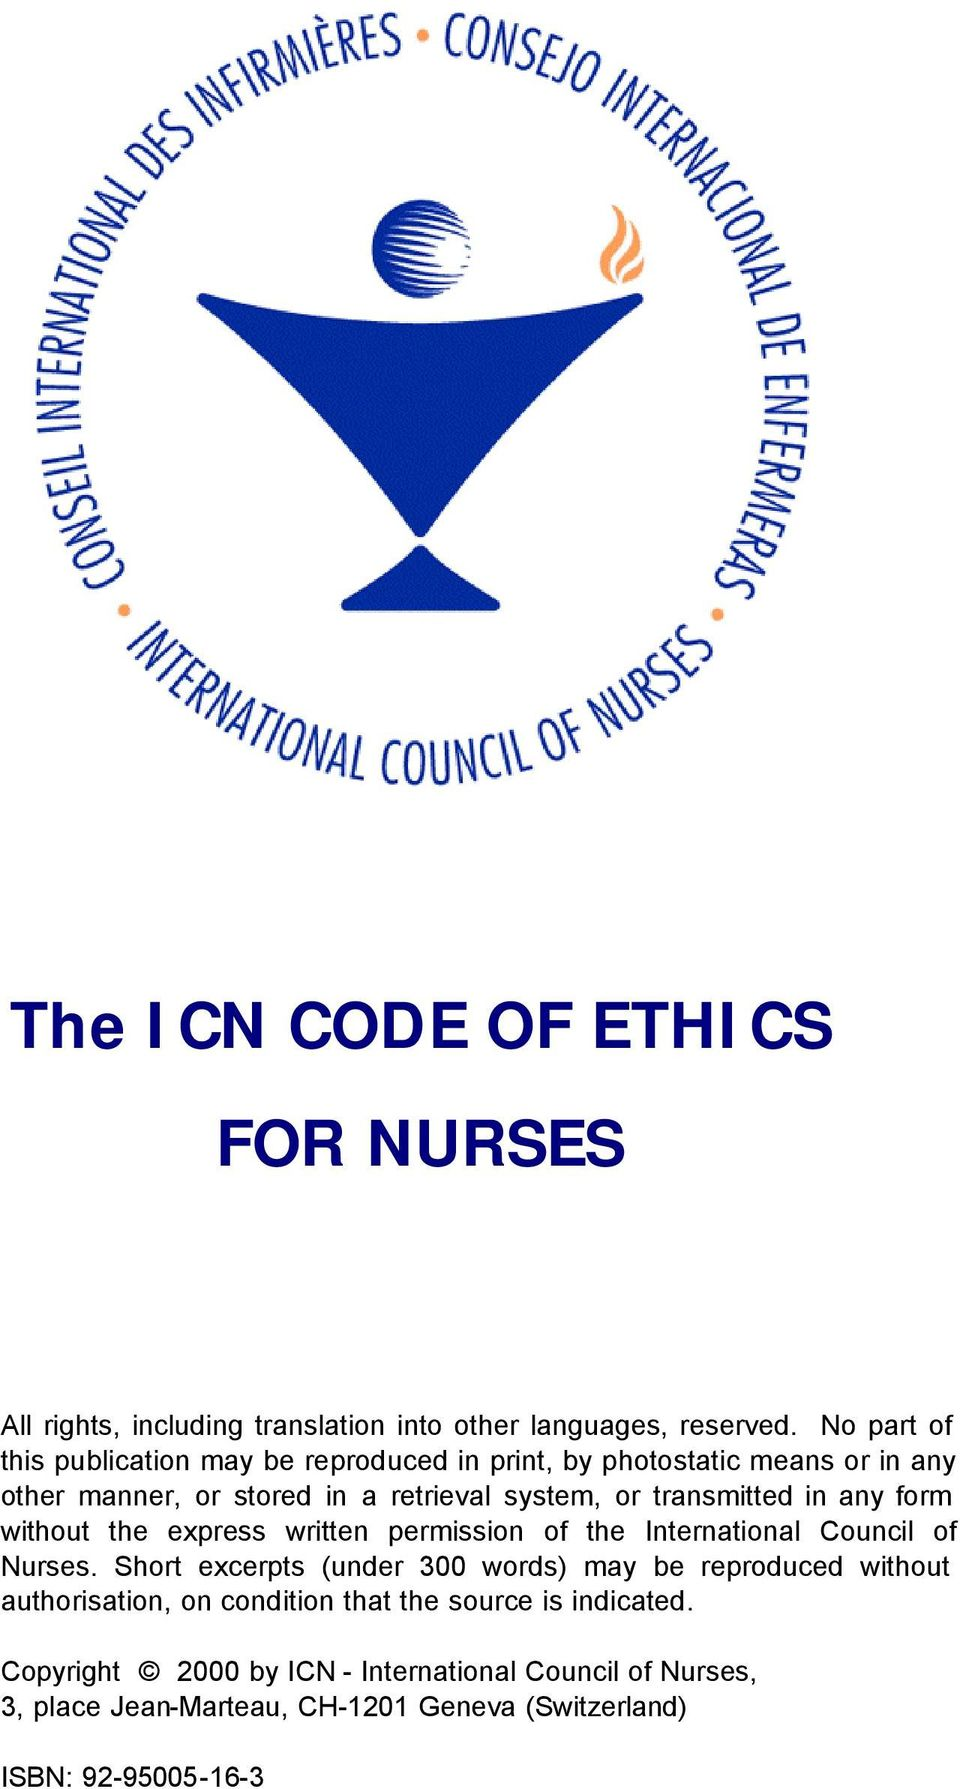 photo about Ana Code of Ethics Printable called The ICN CODE OF ETHICS FOR NURSES - PDF